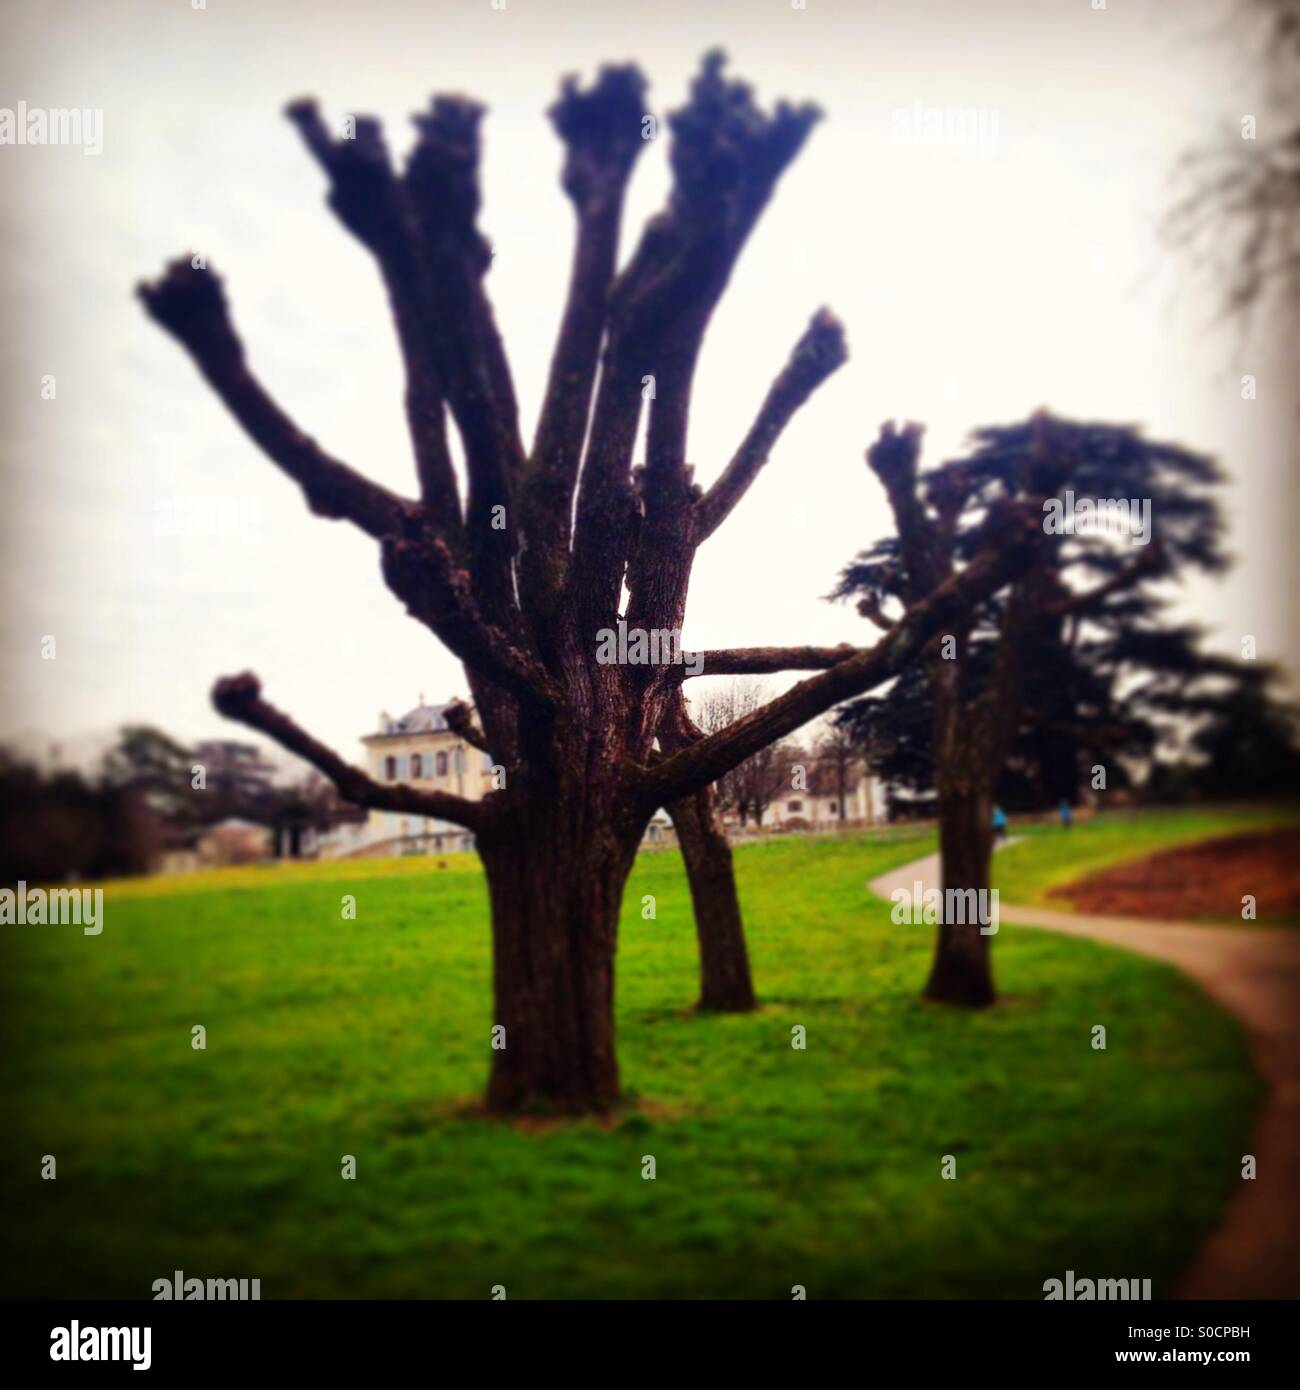 Leafless tree in park. - Stock Image